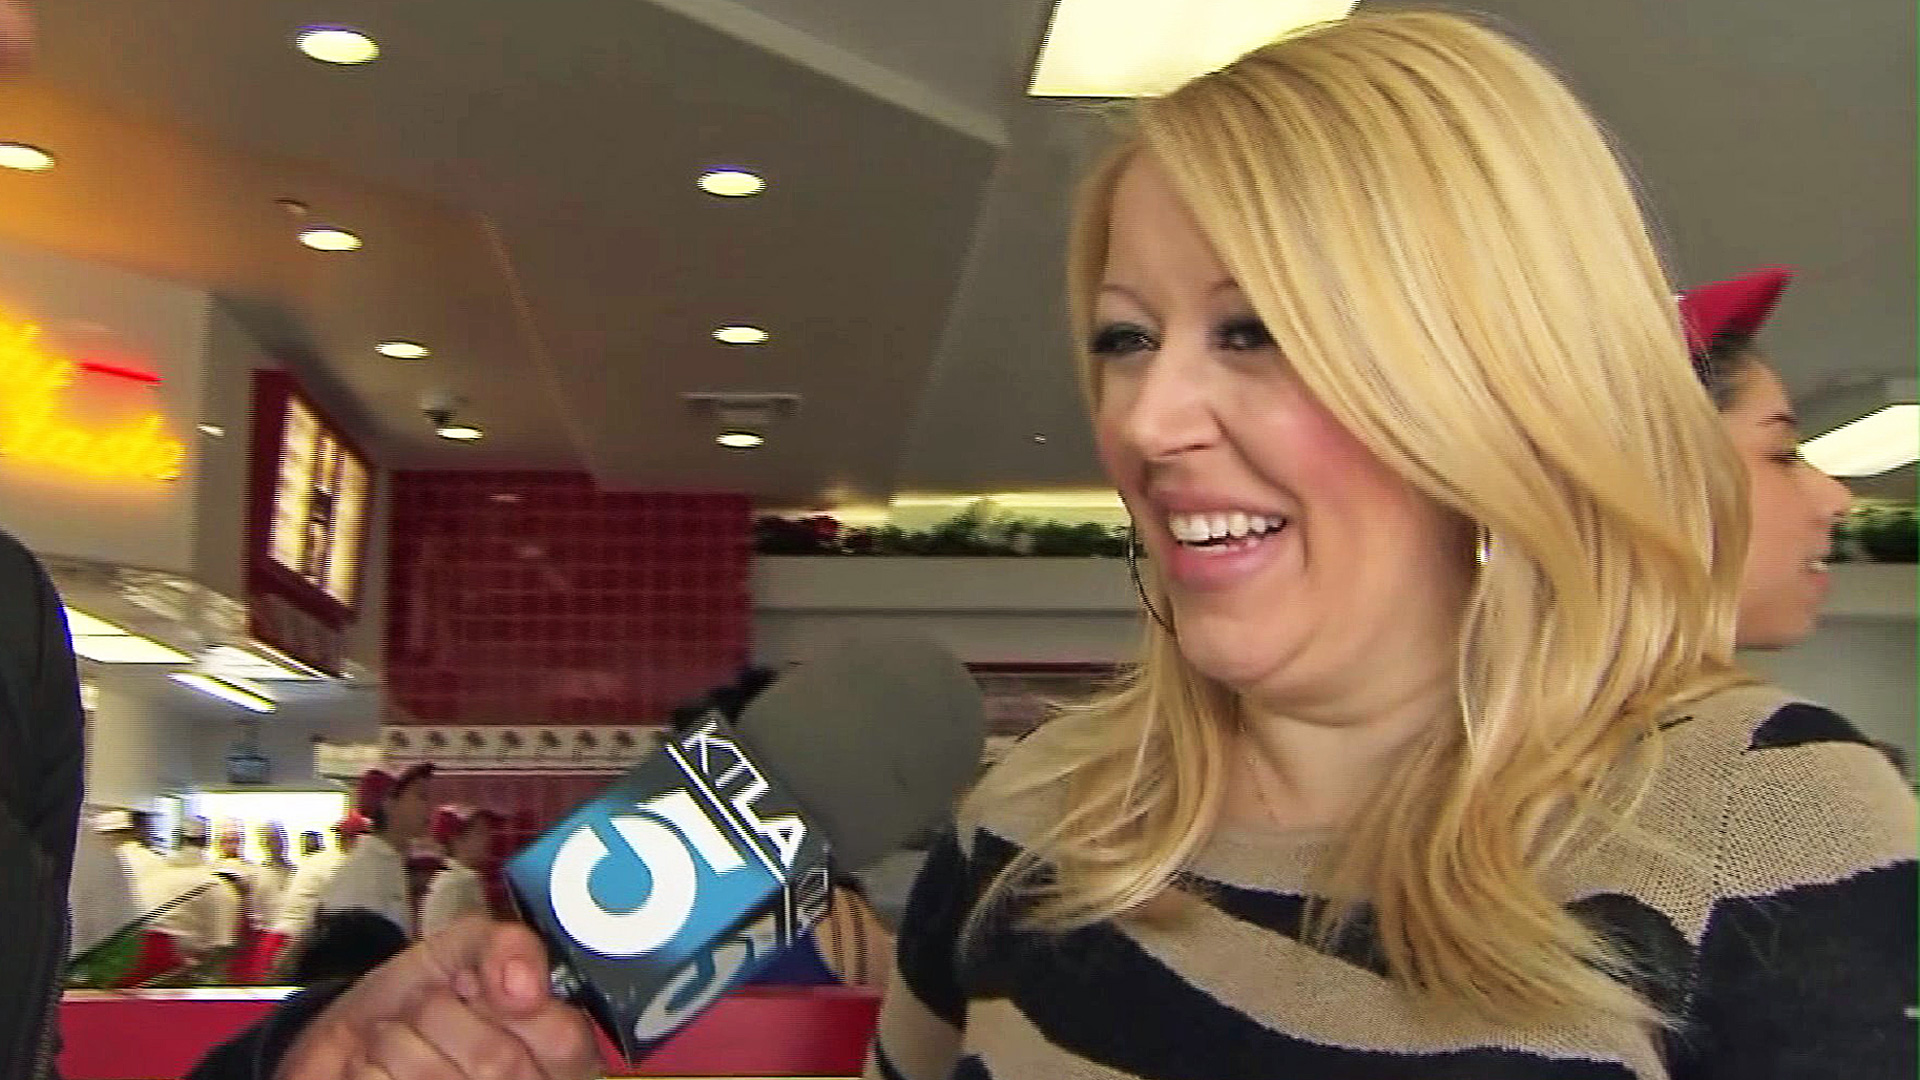 In-N-Out Burger owner Lynsi Snyder laughs after being asked about adding chicken to the menu. (Credit: KTLA)